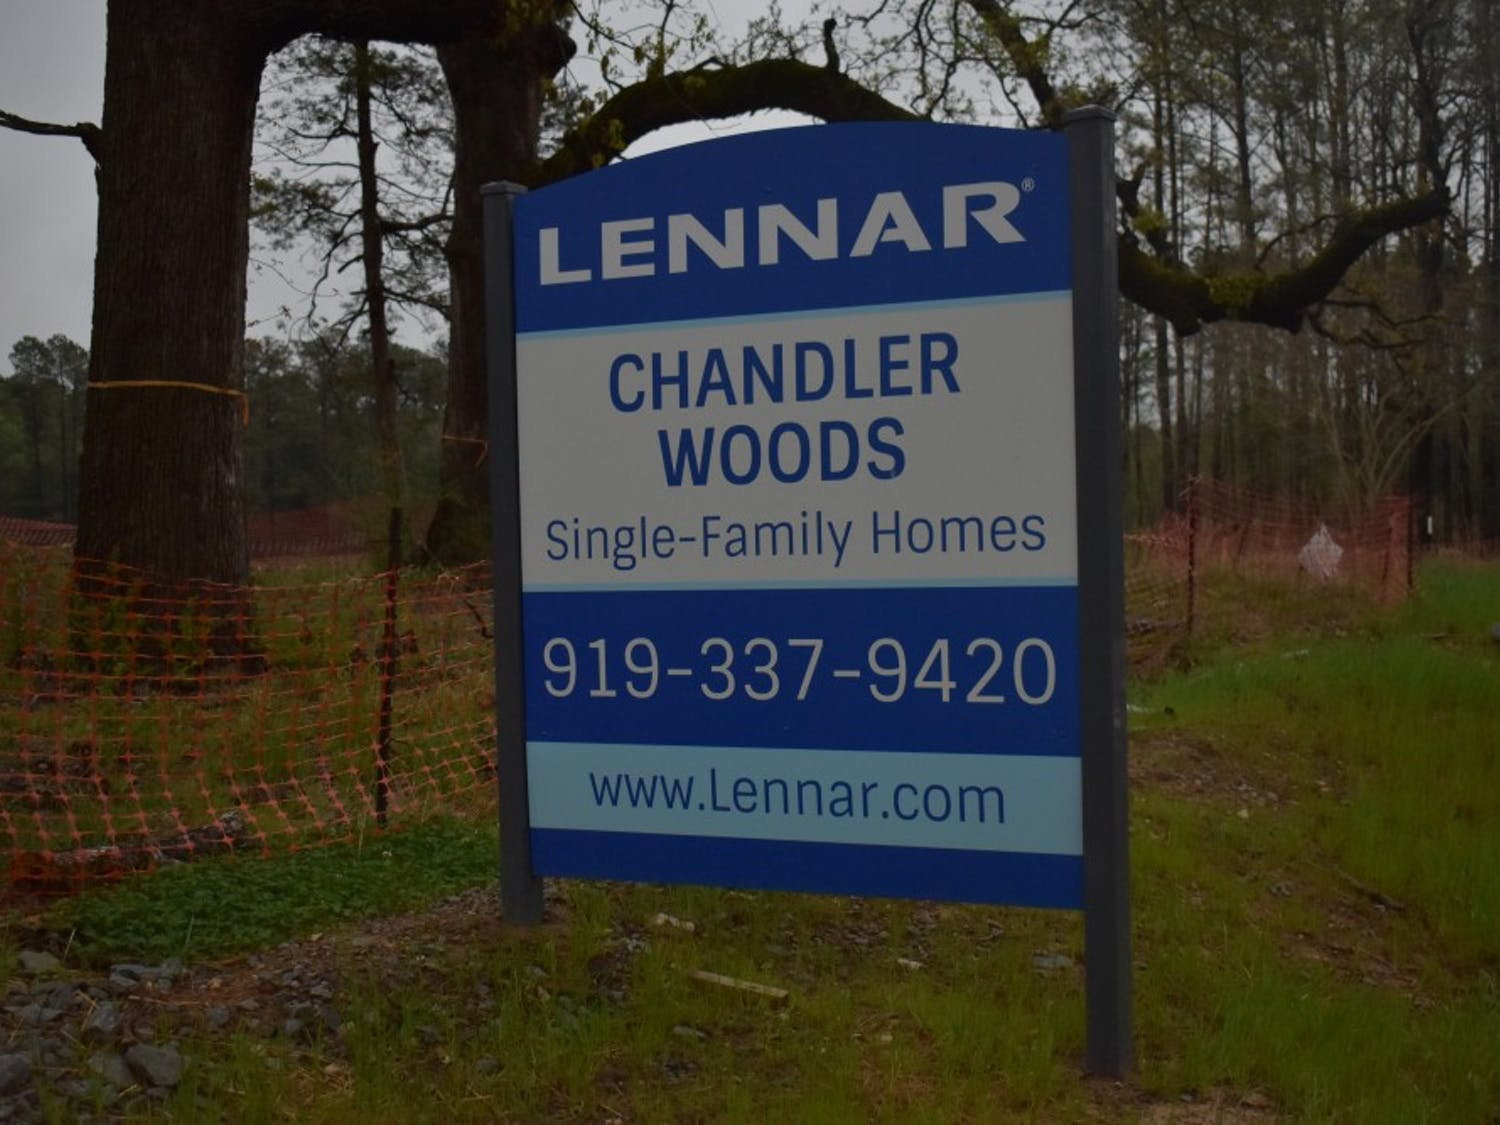 The Chandler Woods Project, on Homestead Road, is just one site of a brand new affordable housing initiative that is now underway. Commissioned by the Town of Chapel Hill, the project will provide several affordable housing opportunities.